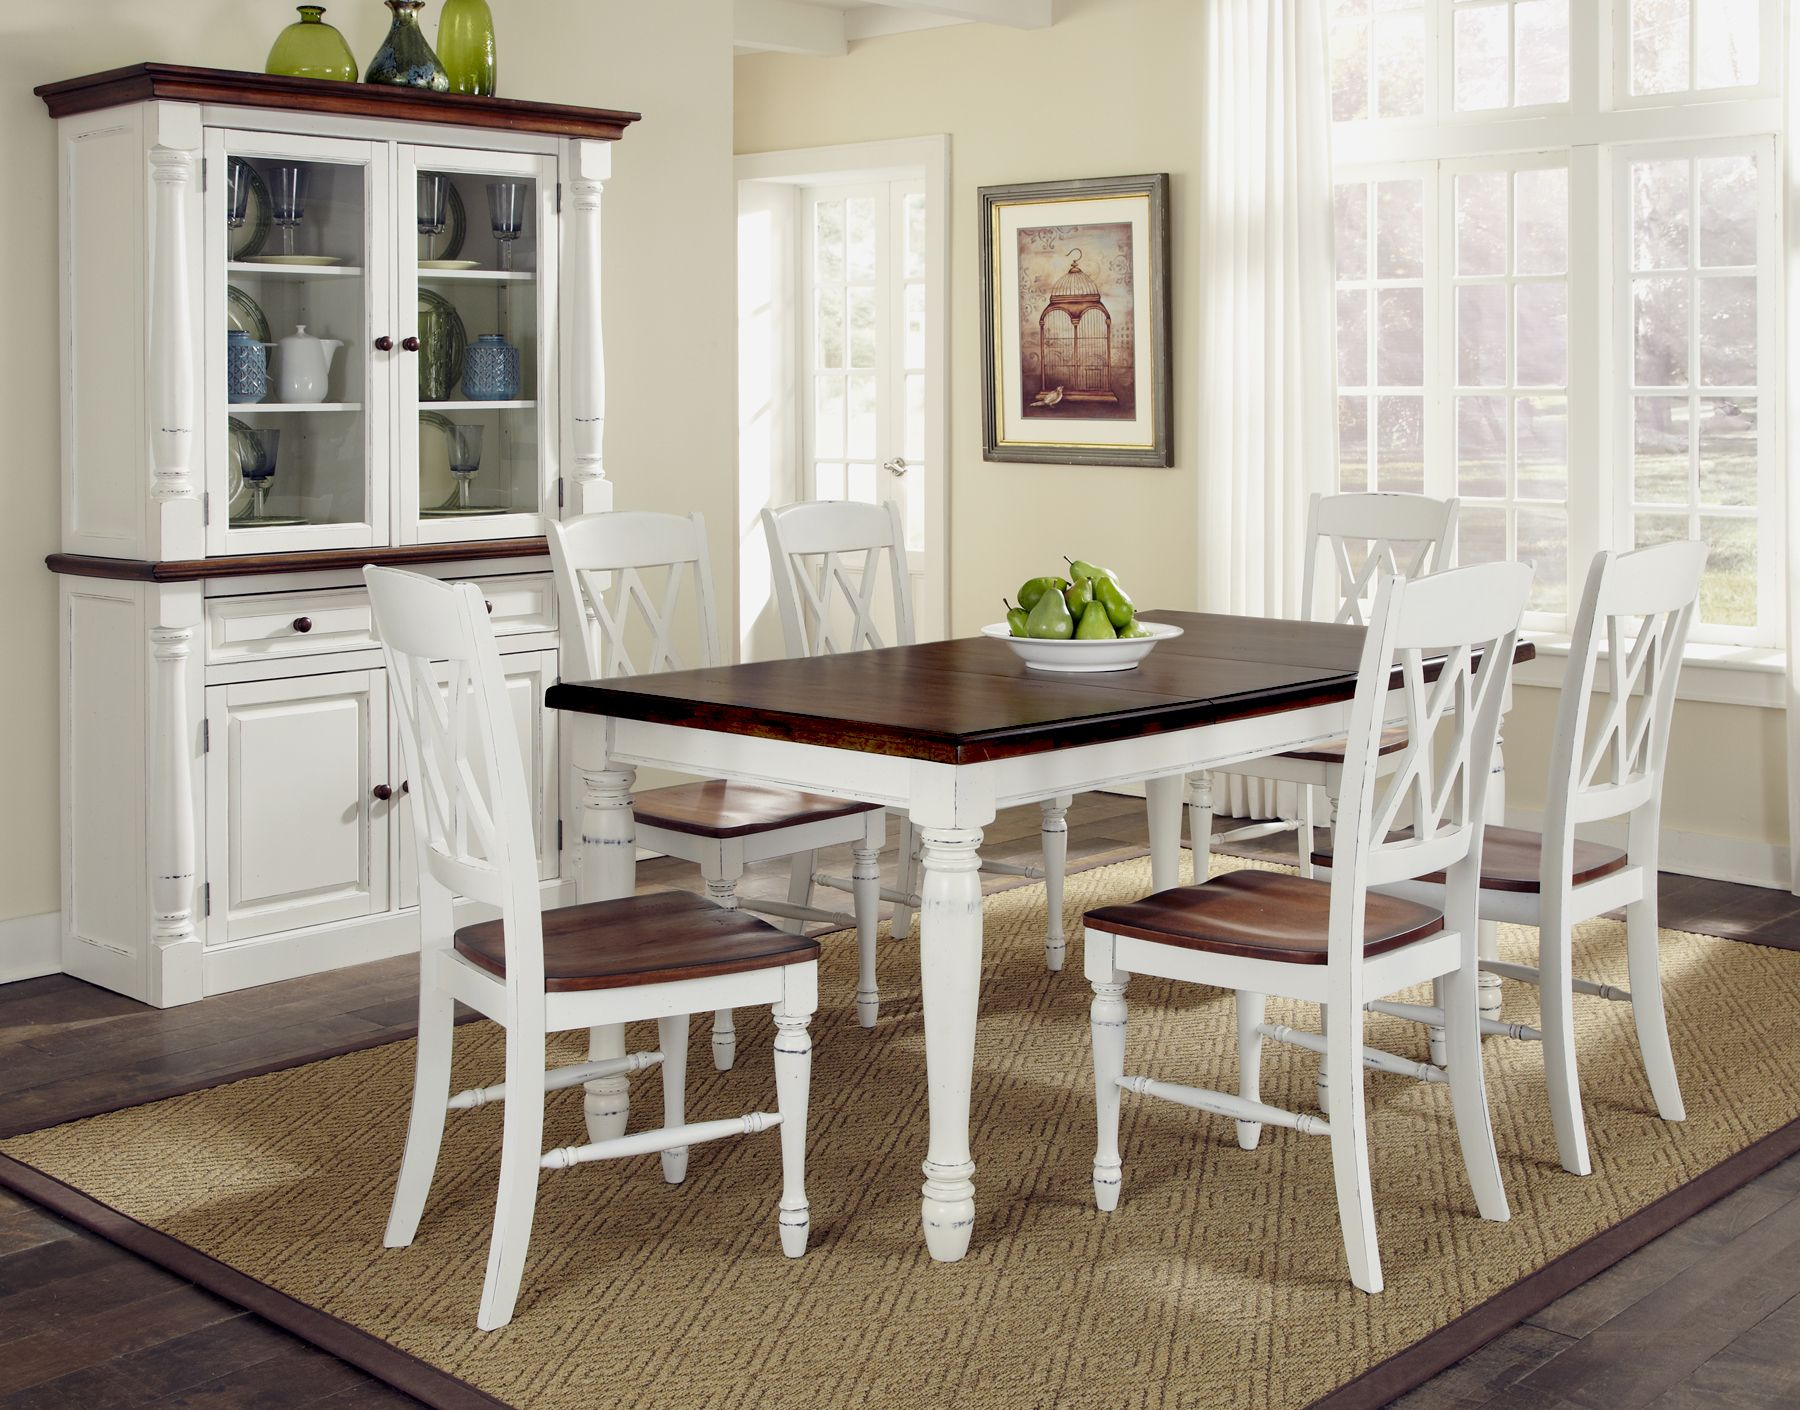 Monarch Rectangular Dining Table and Six